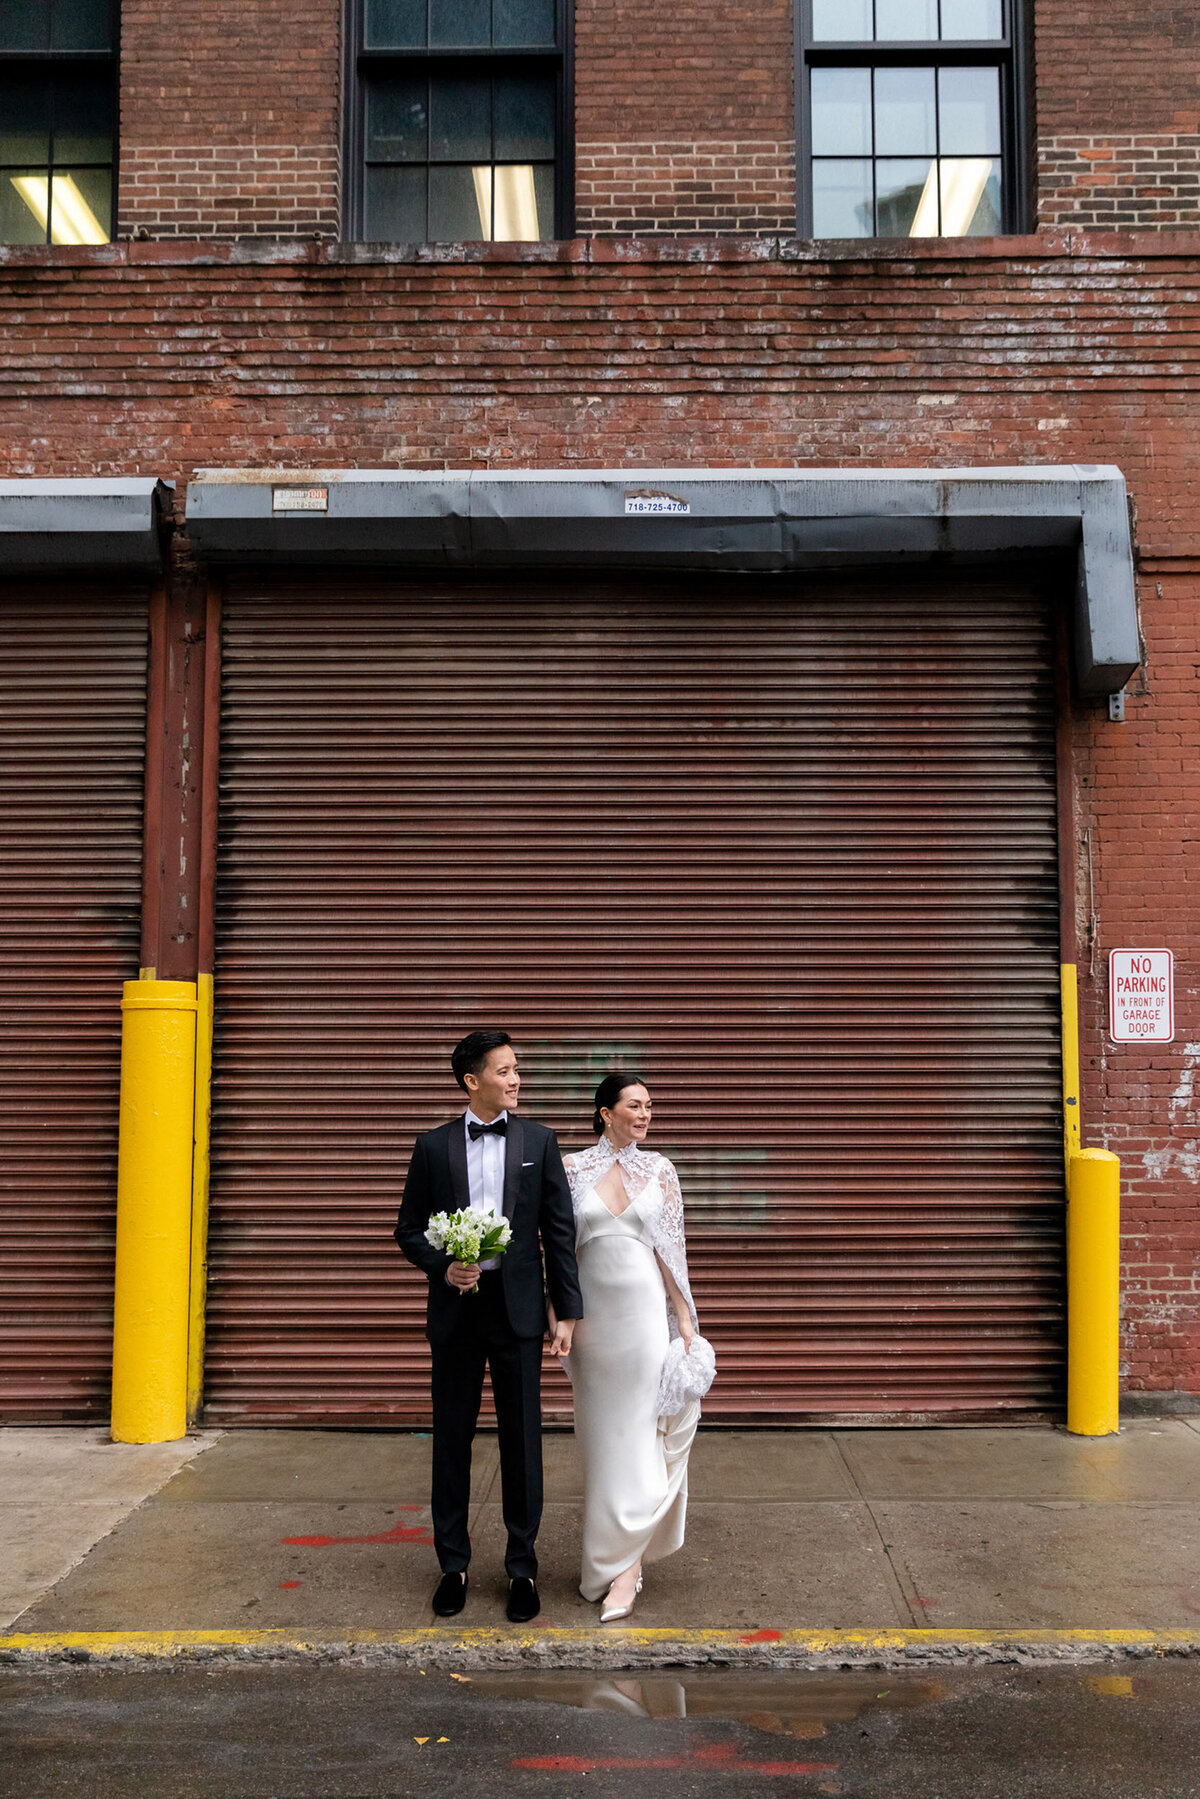 Dumbo_Loft_0221_Cate_Bryan_Wedding_1405